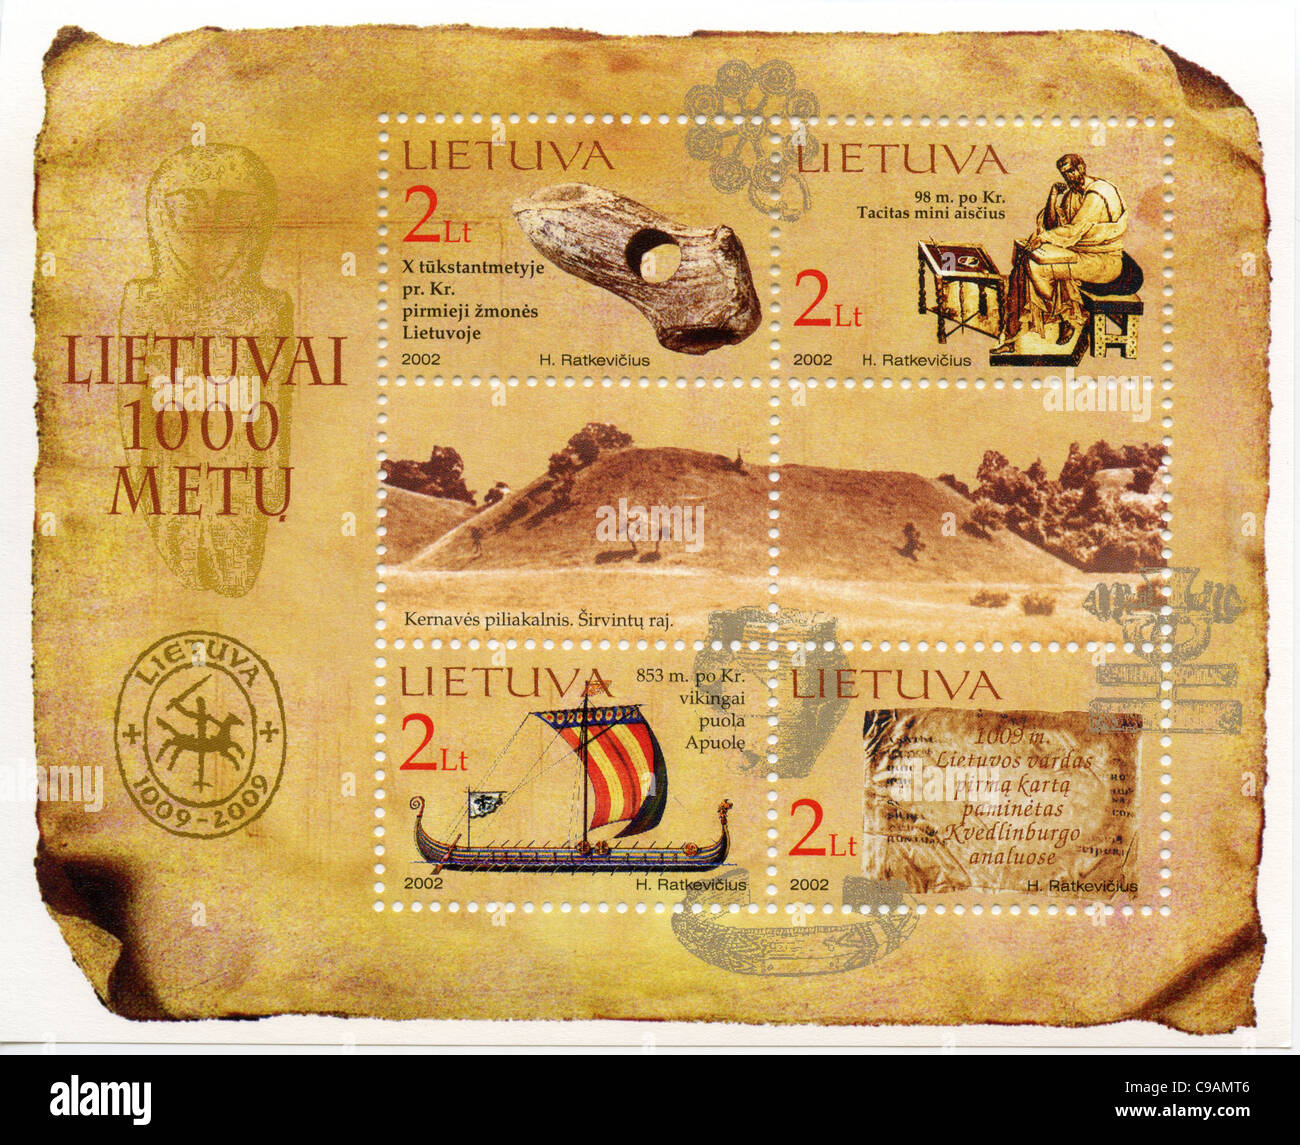 Lithuania postage stamps - Stock Image